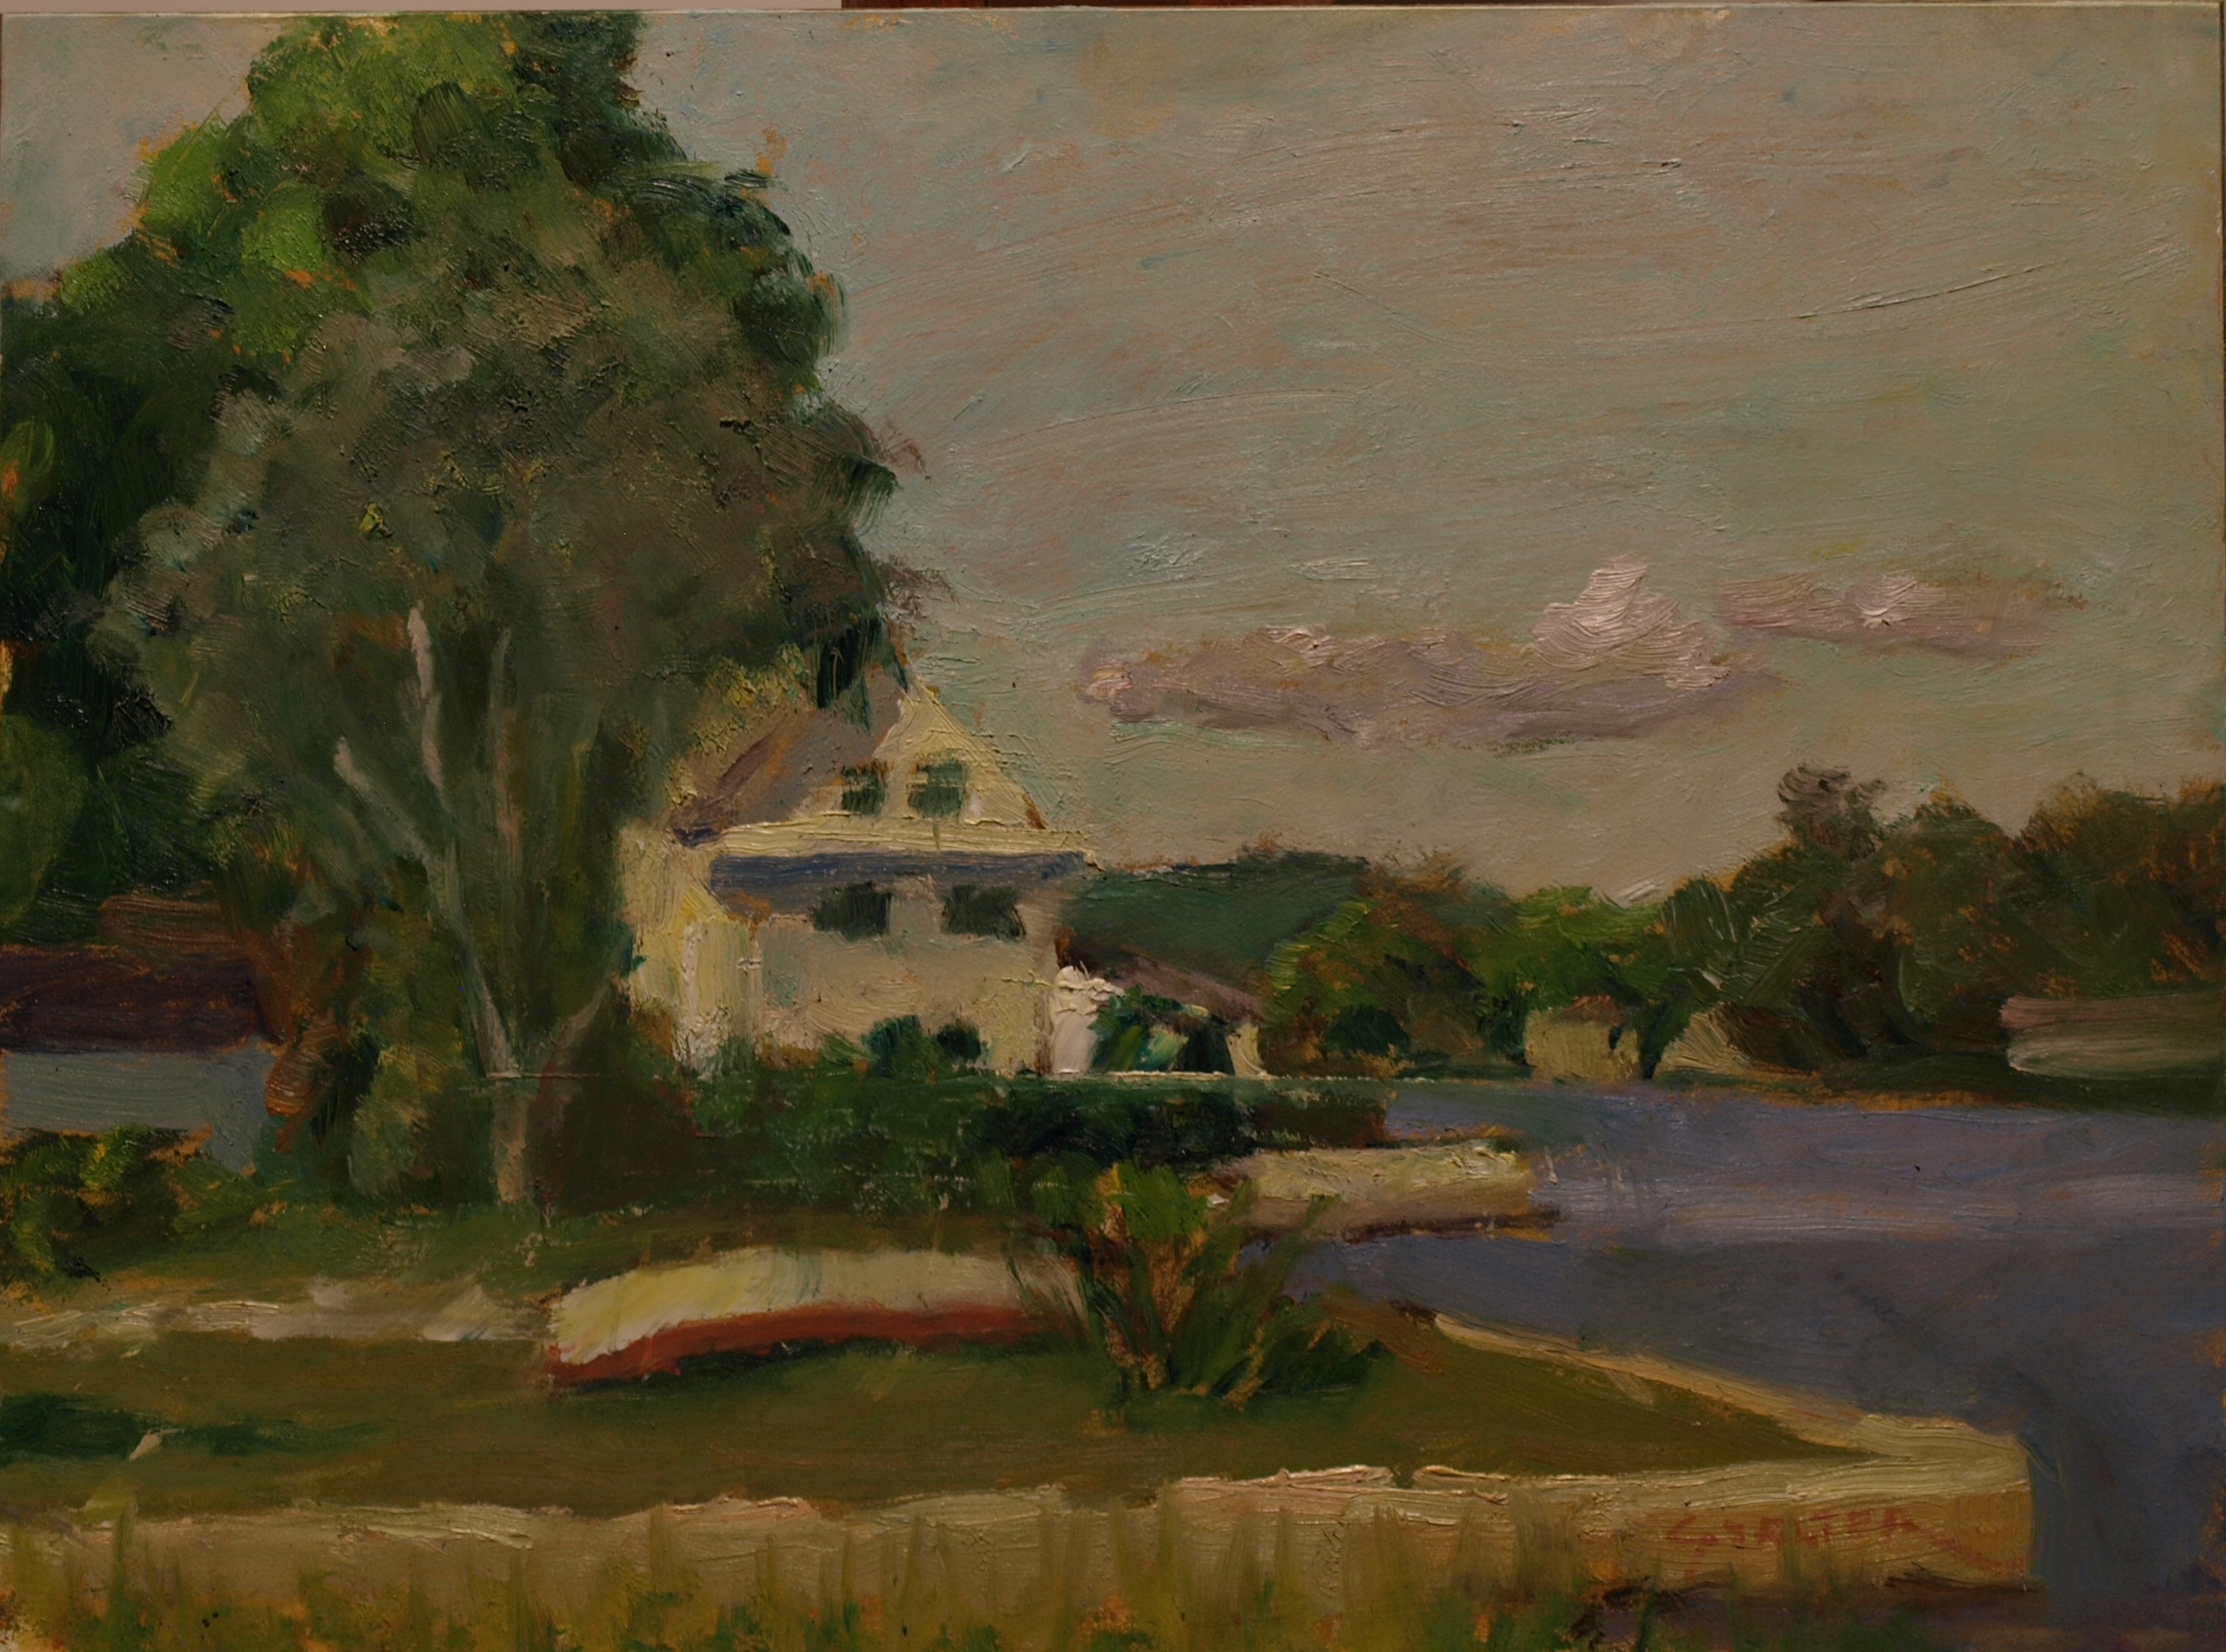 Mystic River Shoreline, Oil on Panel, 9 x 12 Inches, by Richard Stalter, $220